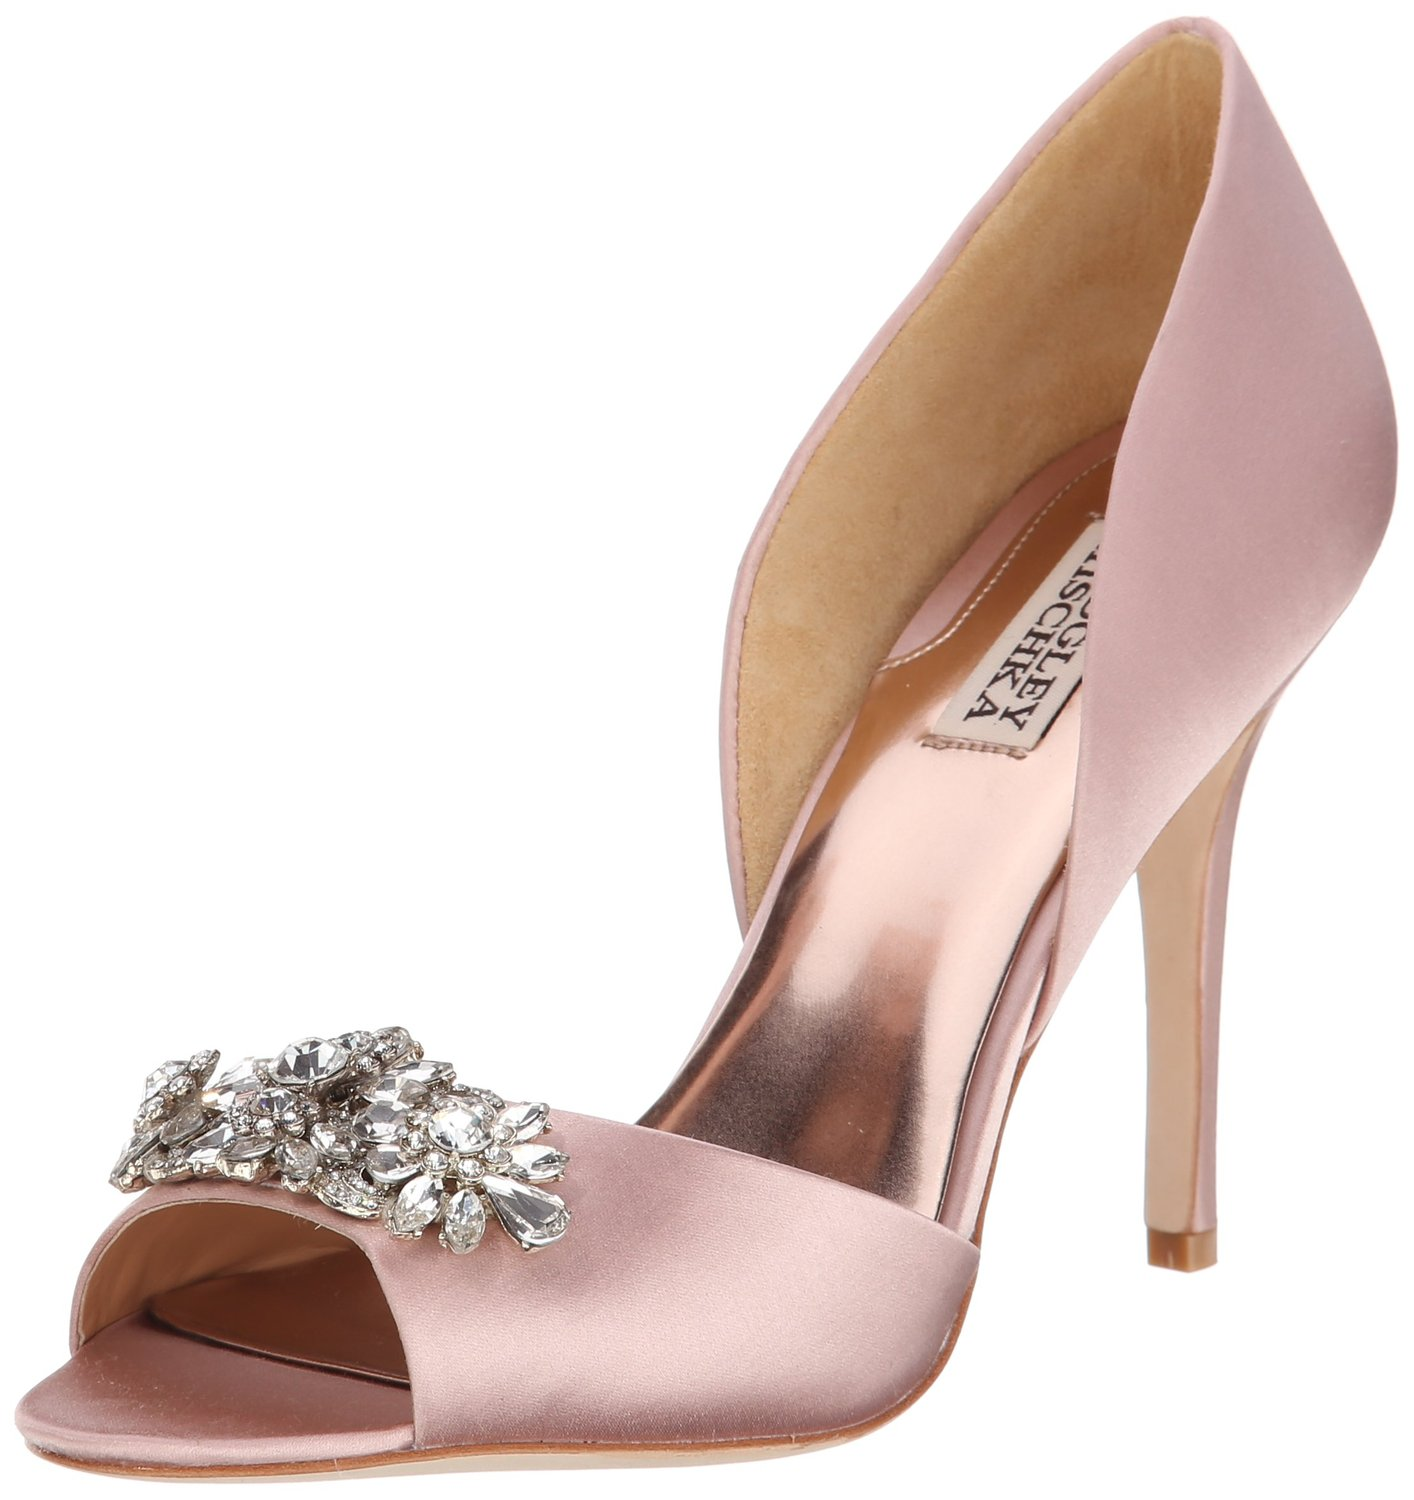 a44f2cd2cb6 Badgley Mischka Giana D Orsay Pump BlushSatin